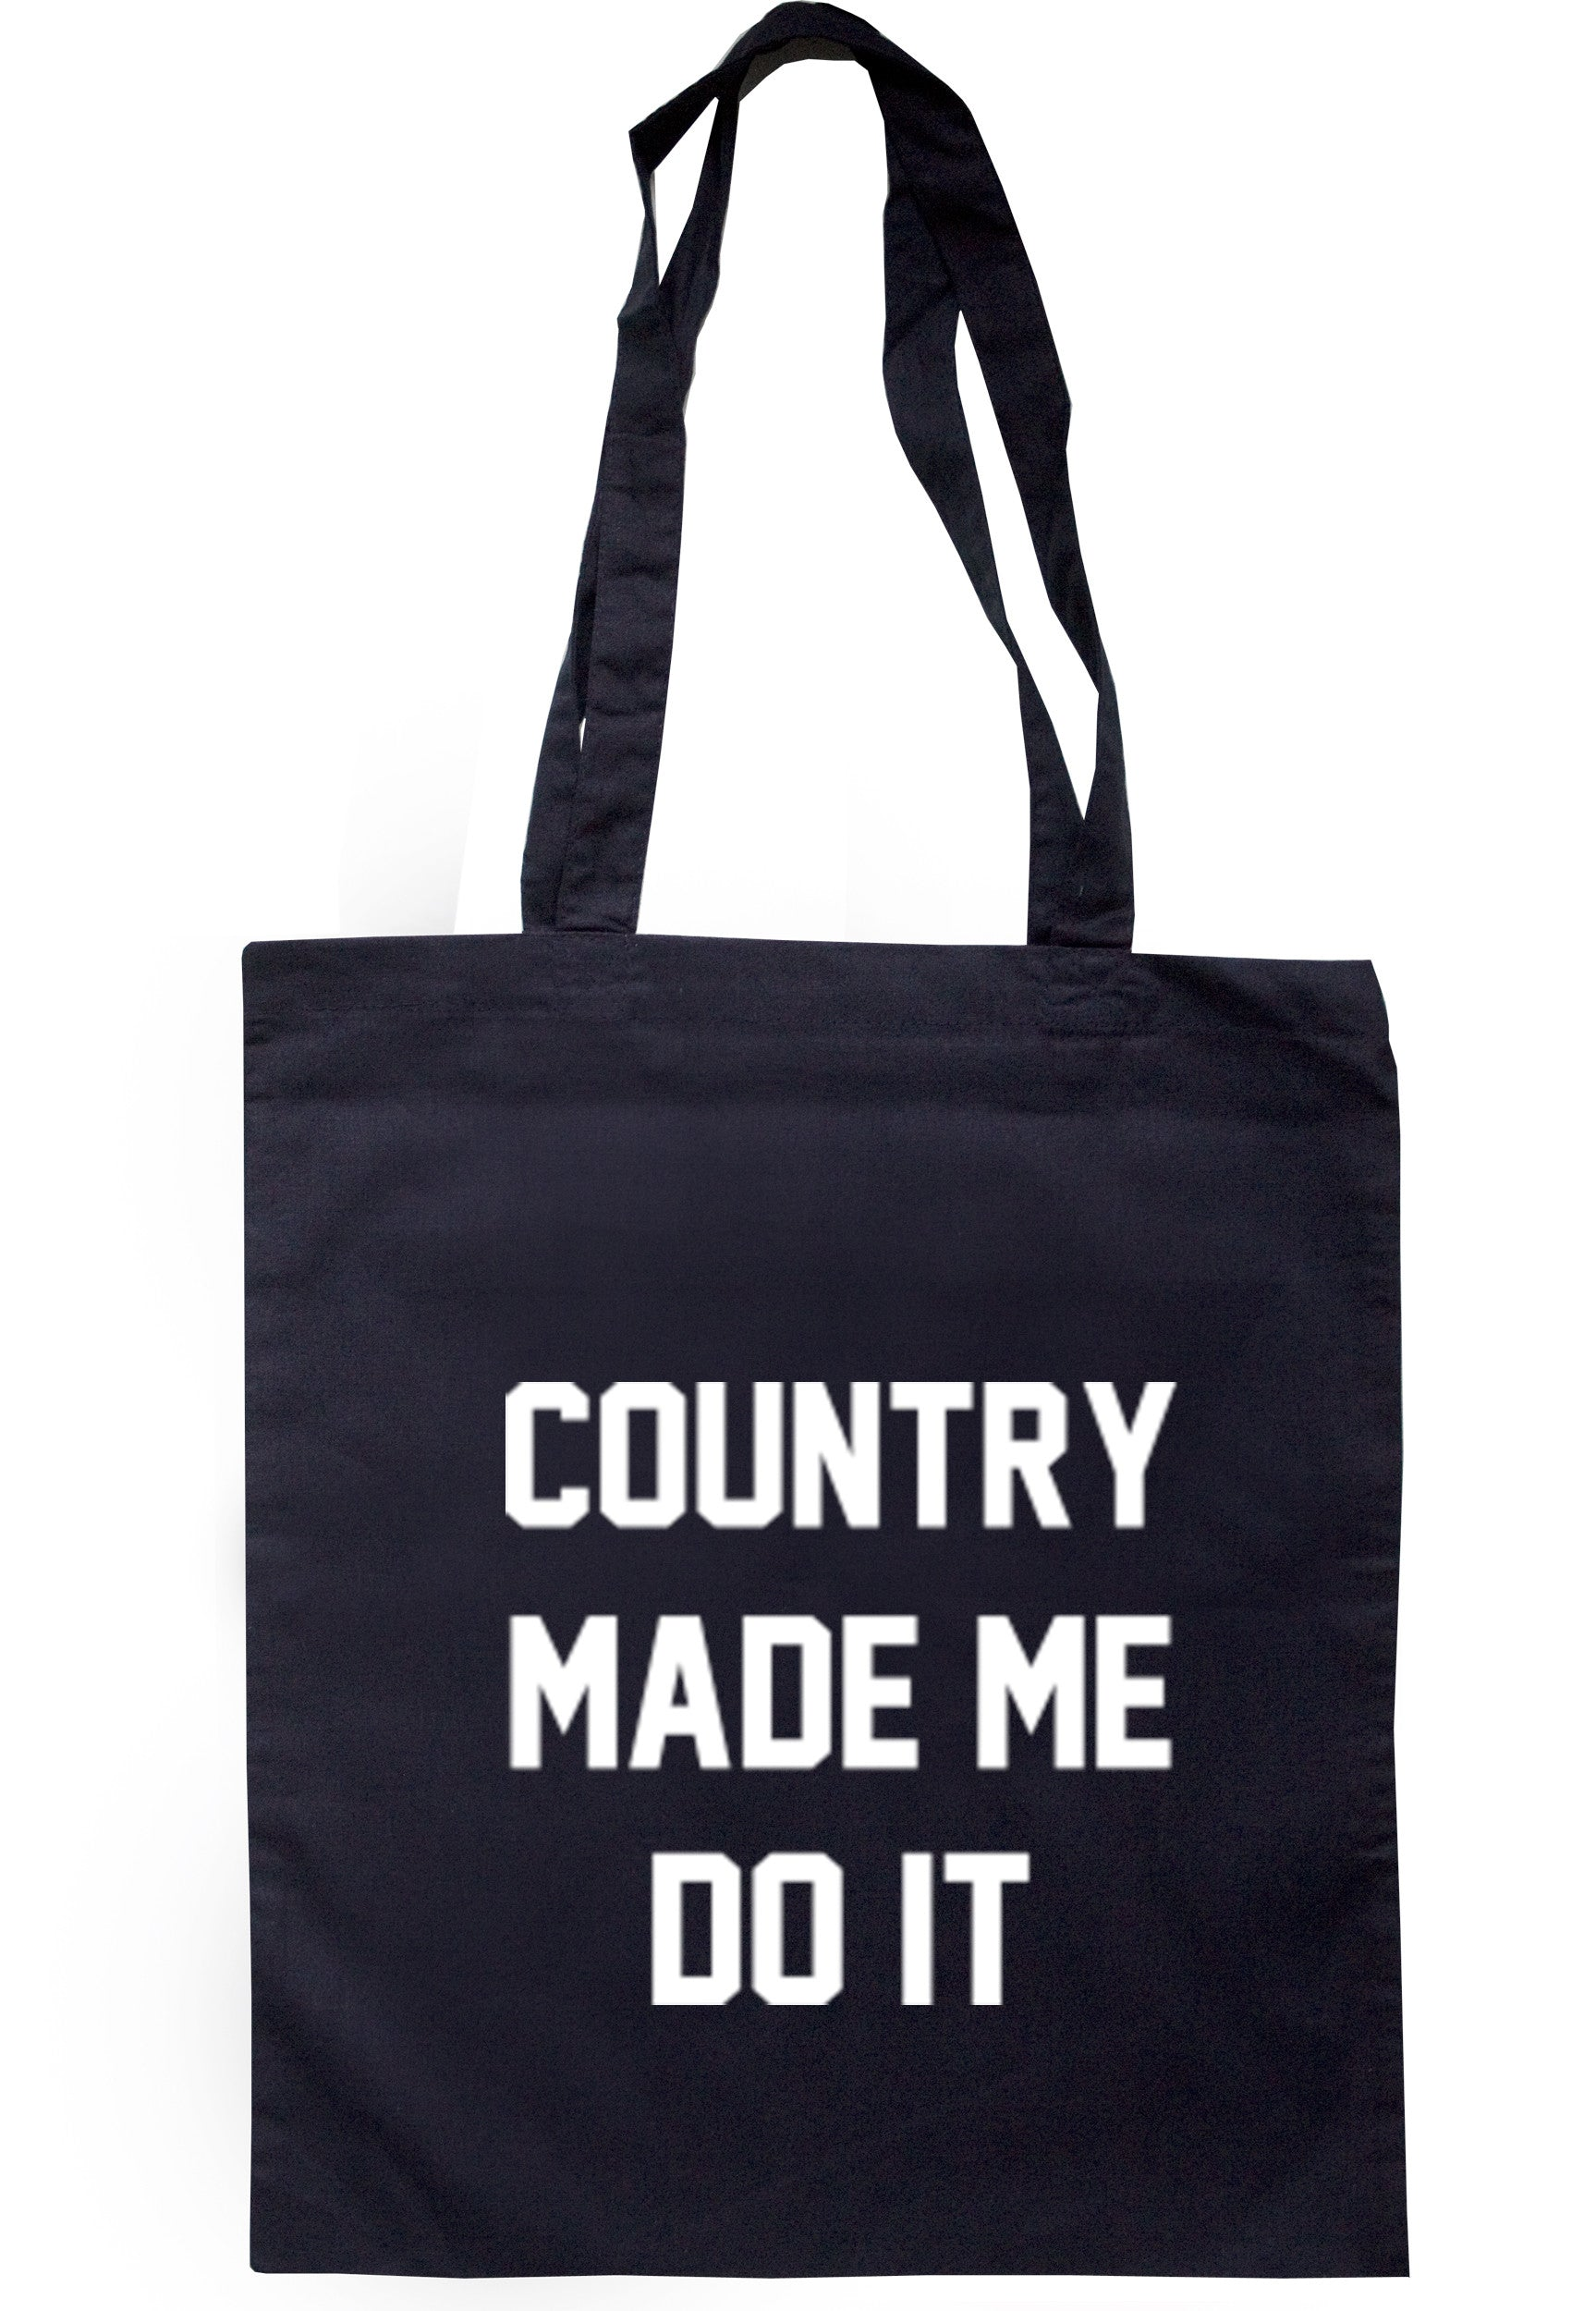 Country Made Me Do It Tote Bag TB0180 - Illustrated Identity Ltd.